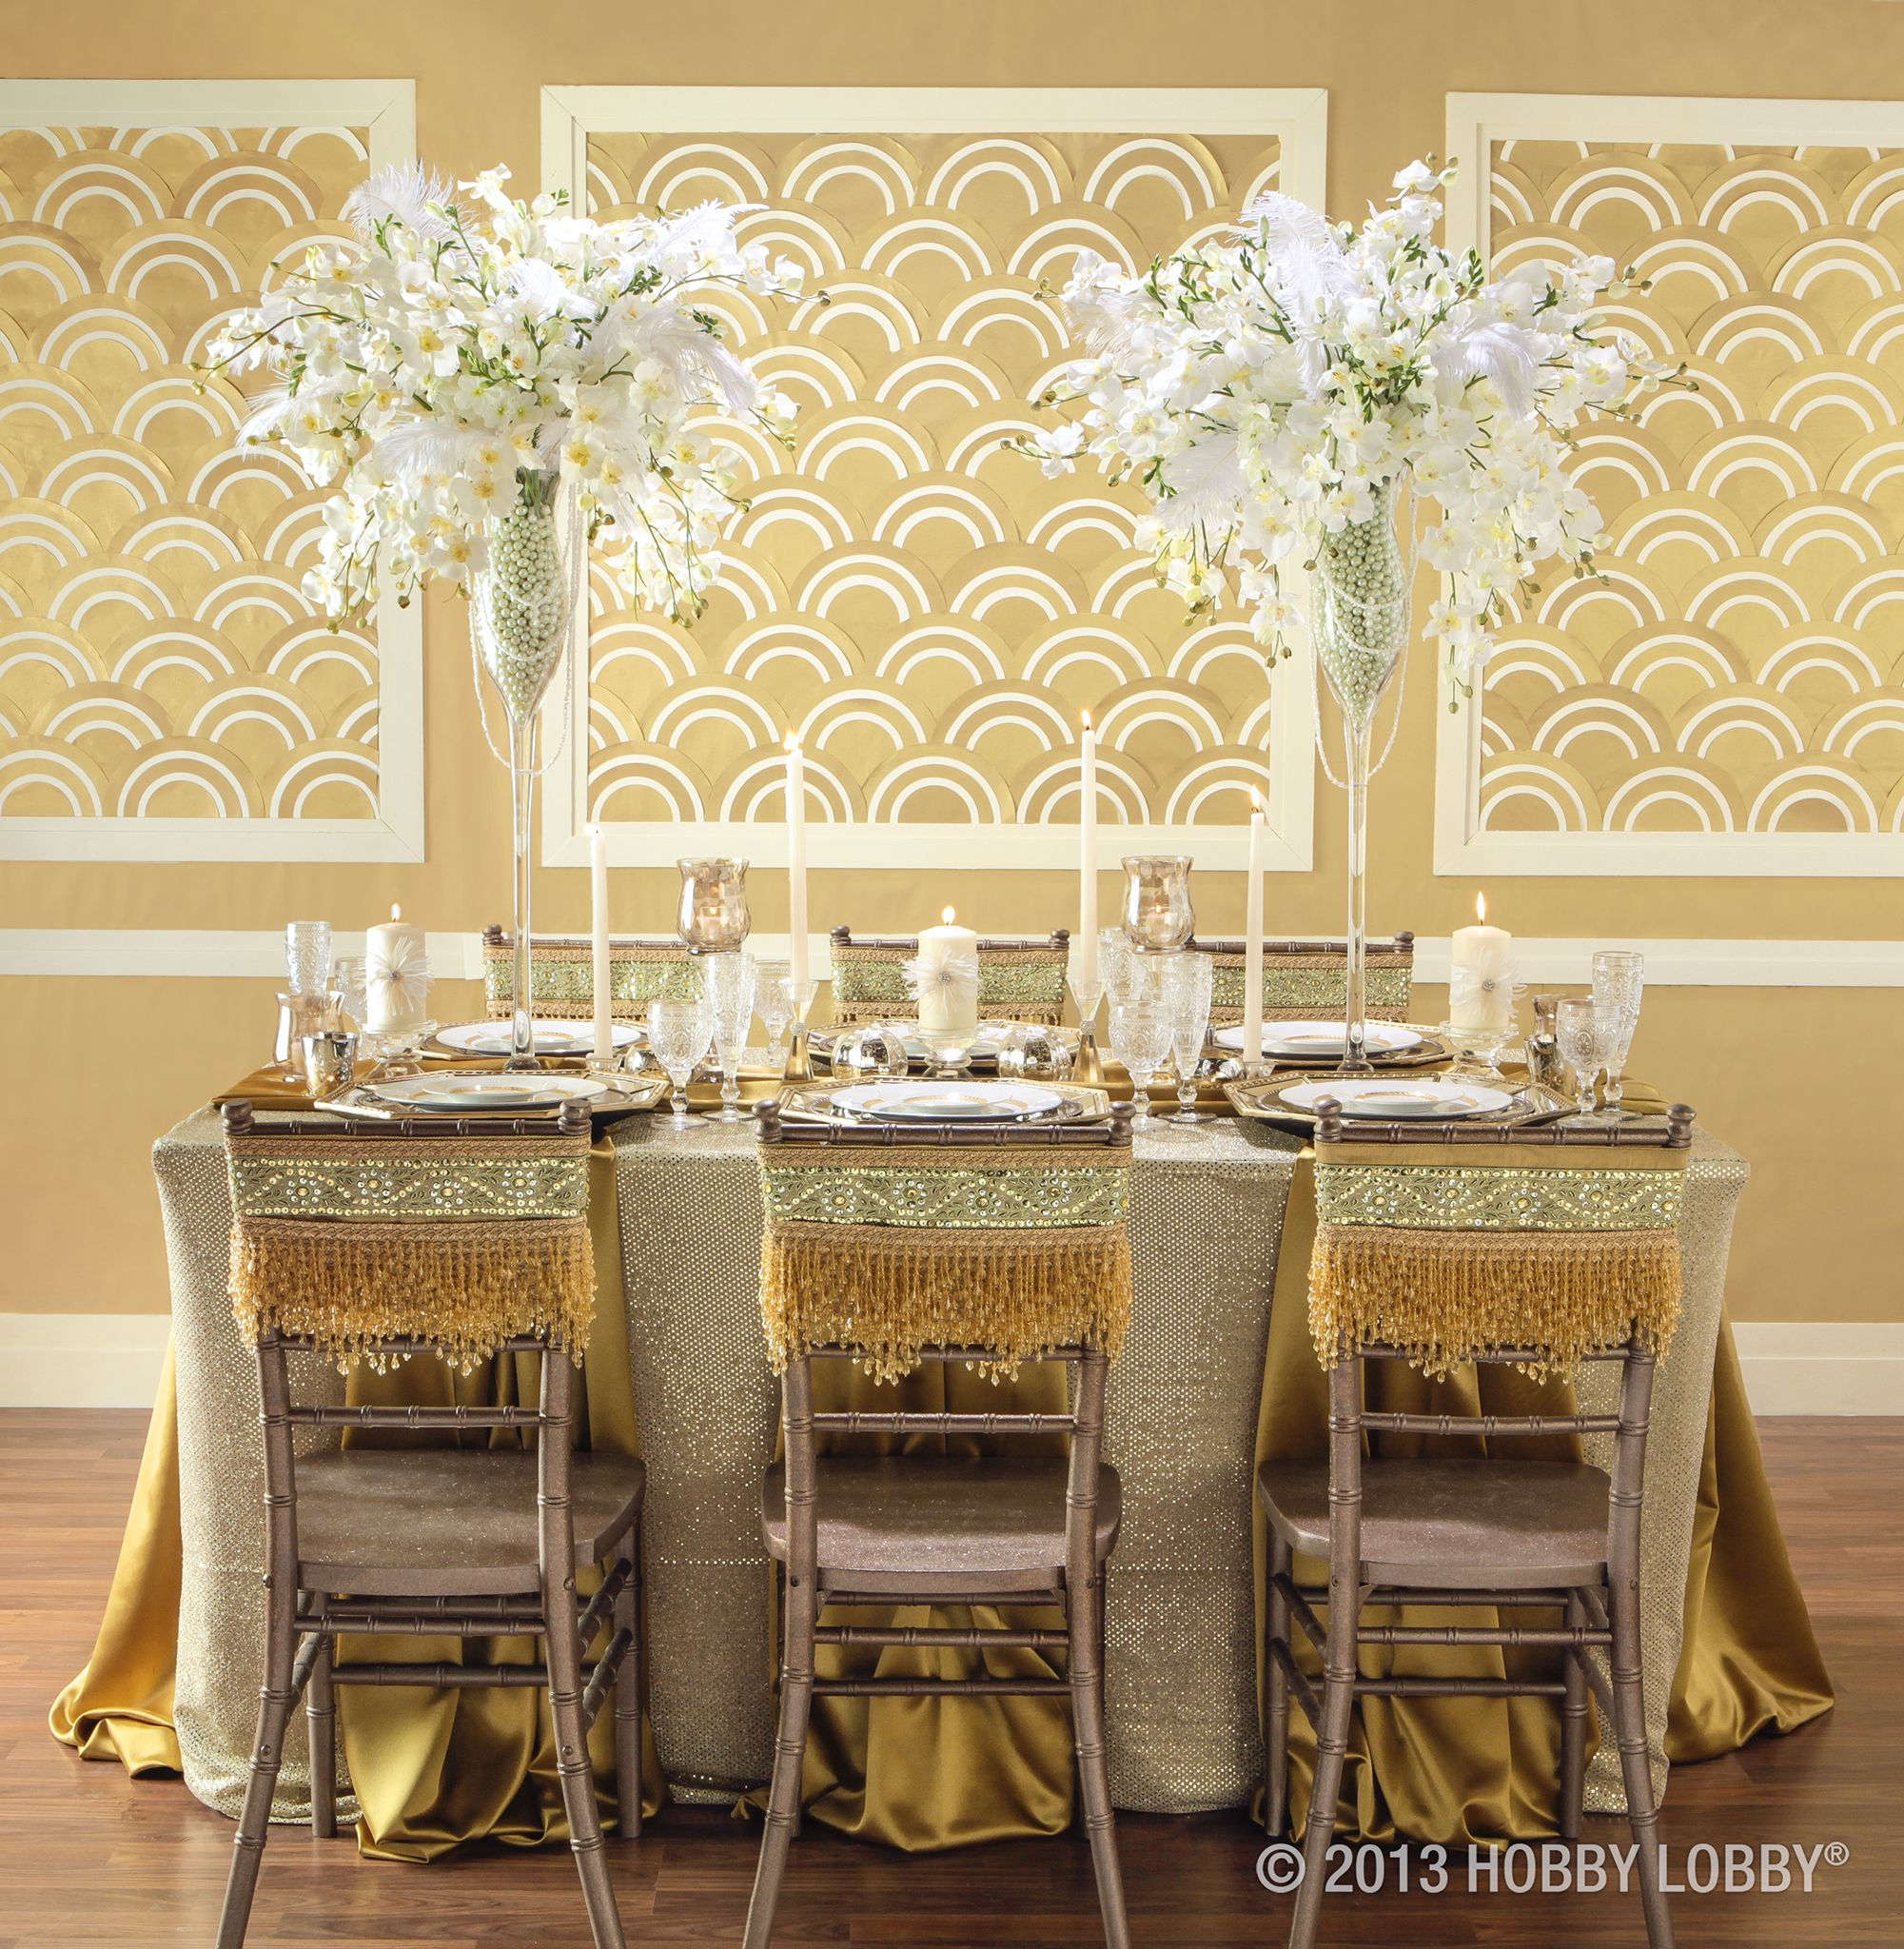 1920s Vintage Wedding Ideas: Luxury, Refinement And Style, That's What The 1920s Were